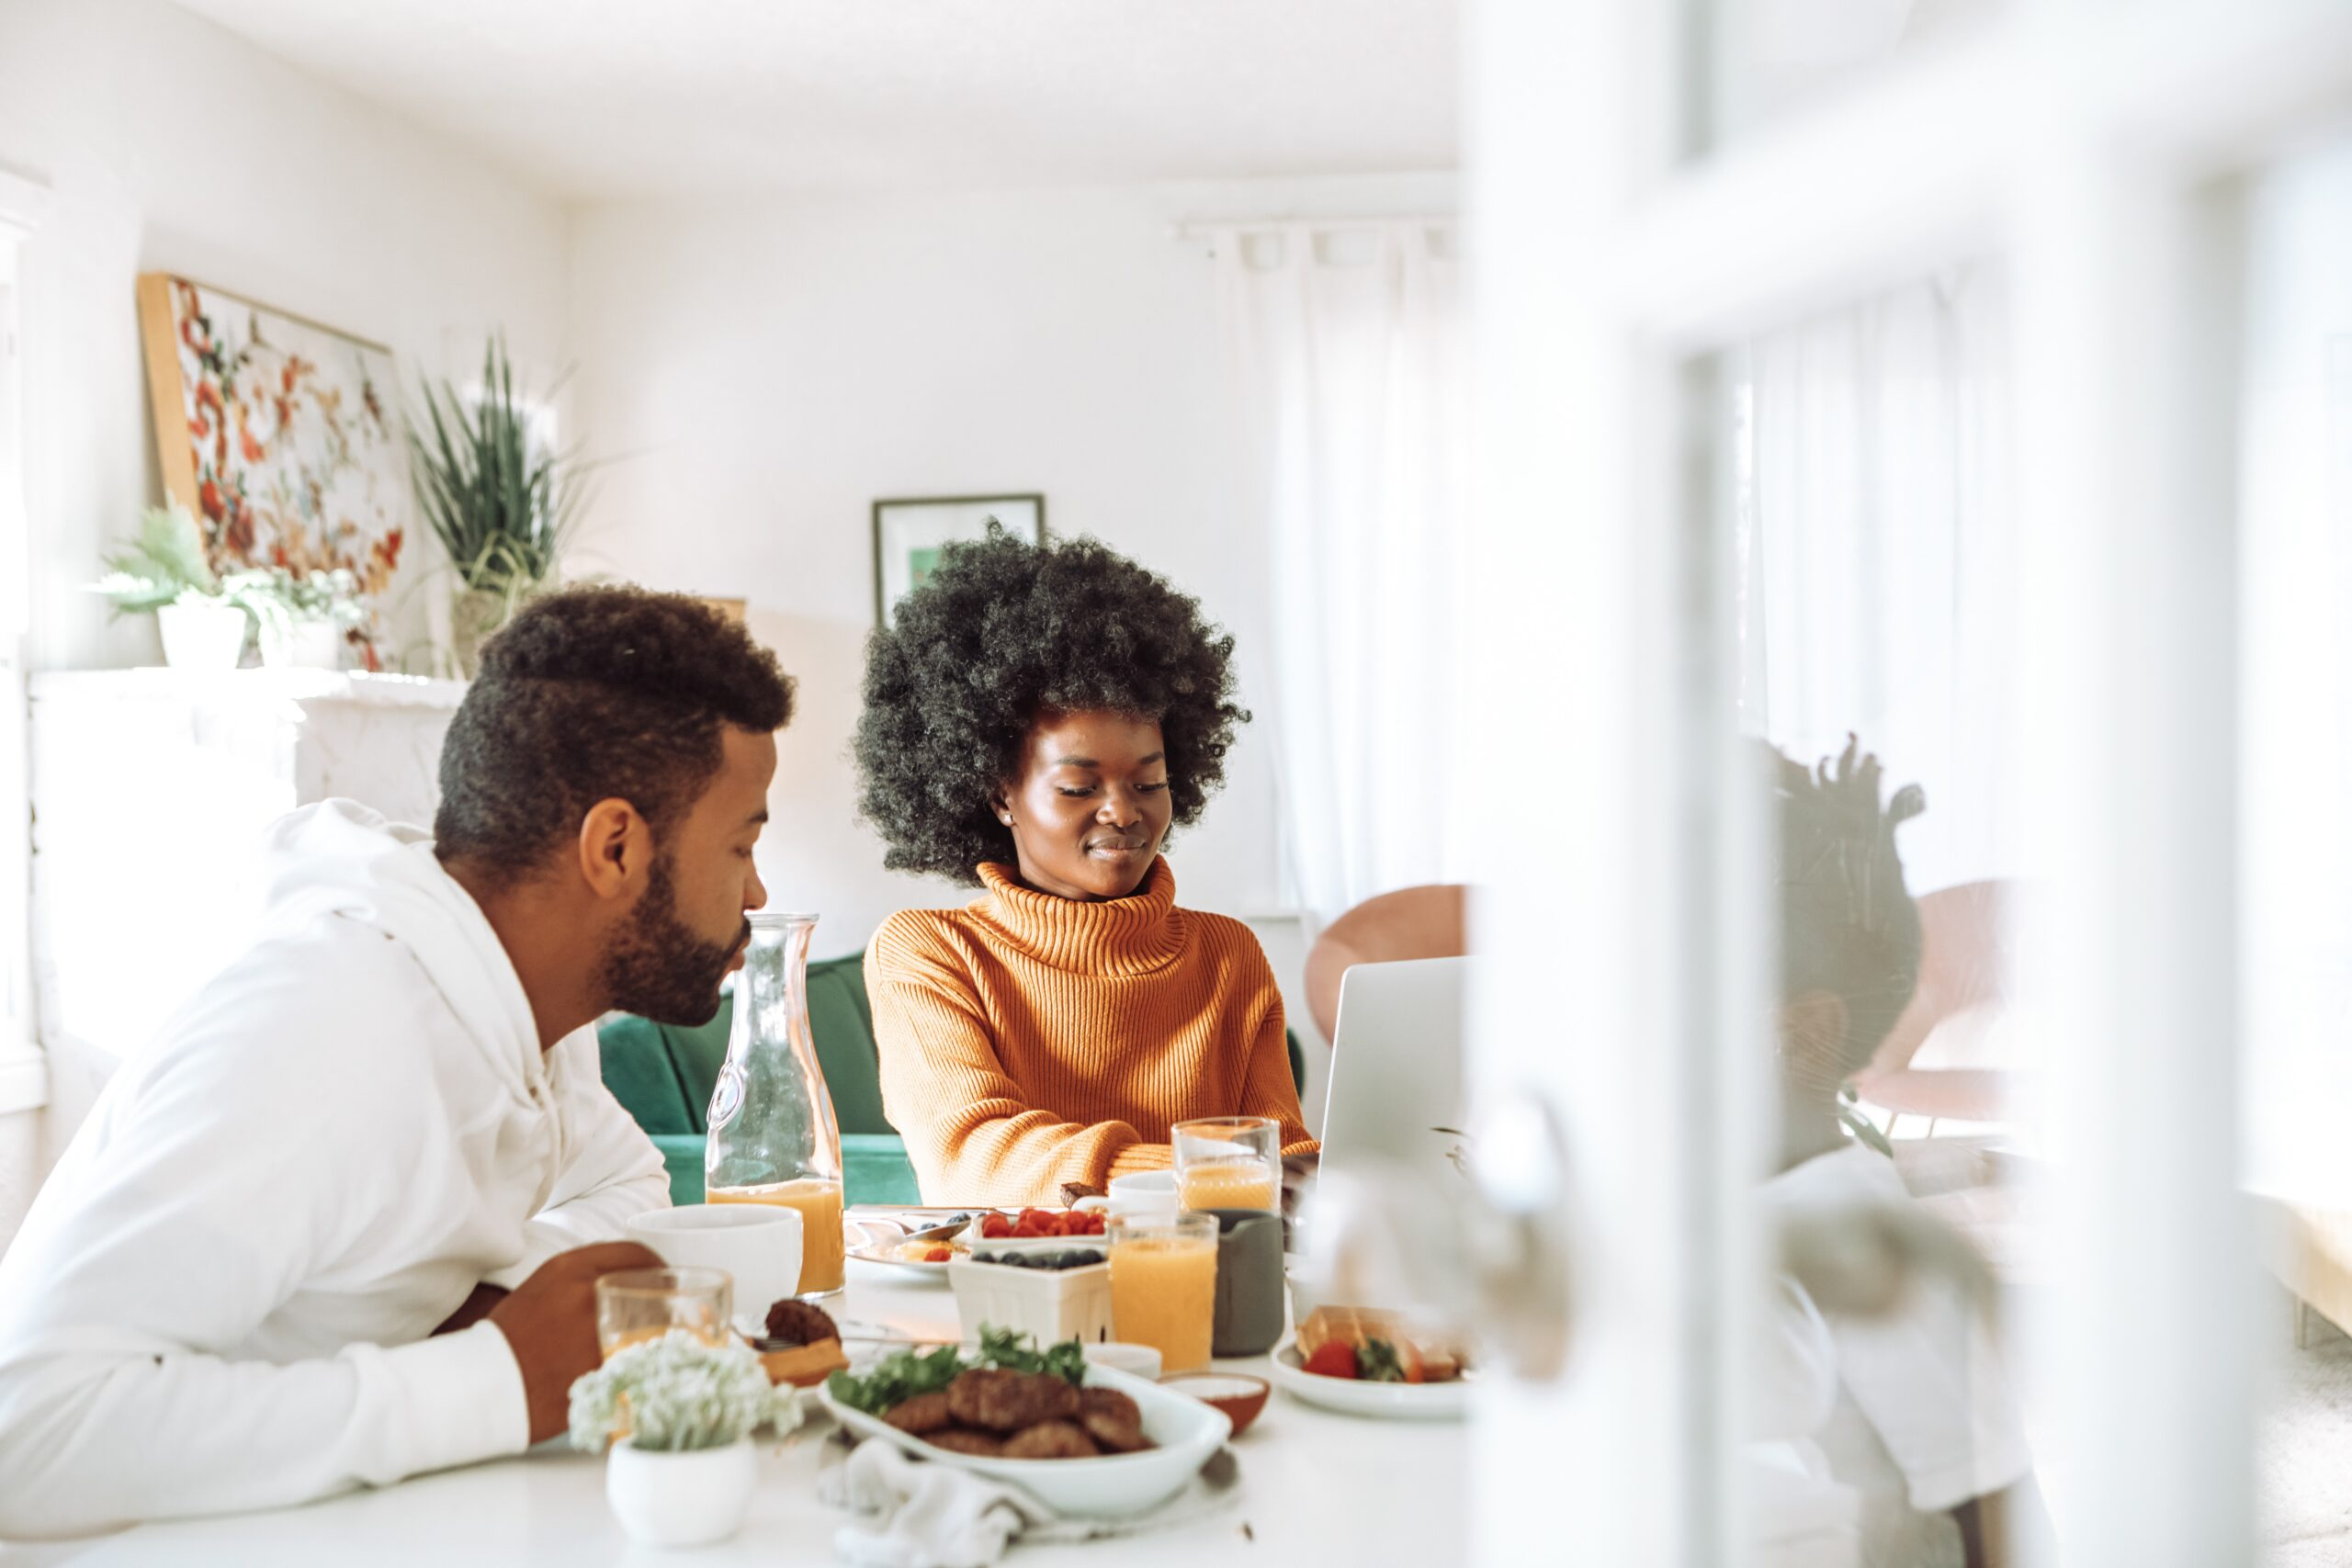 4 Tips for Working Remotely With Roommates or Family